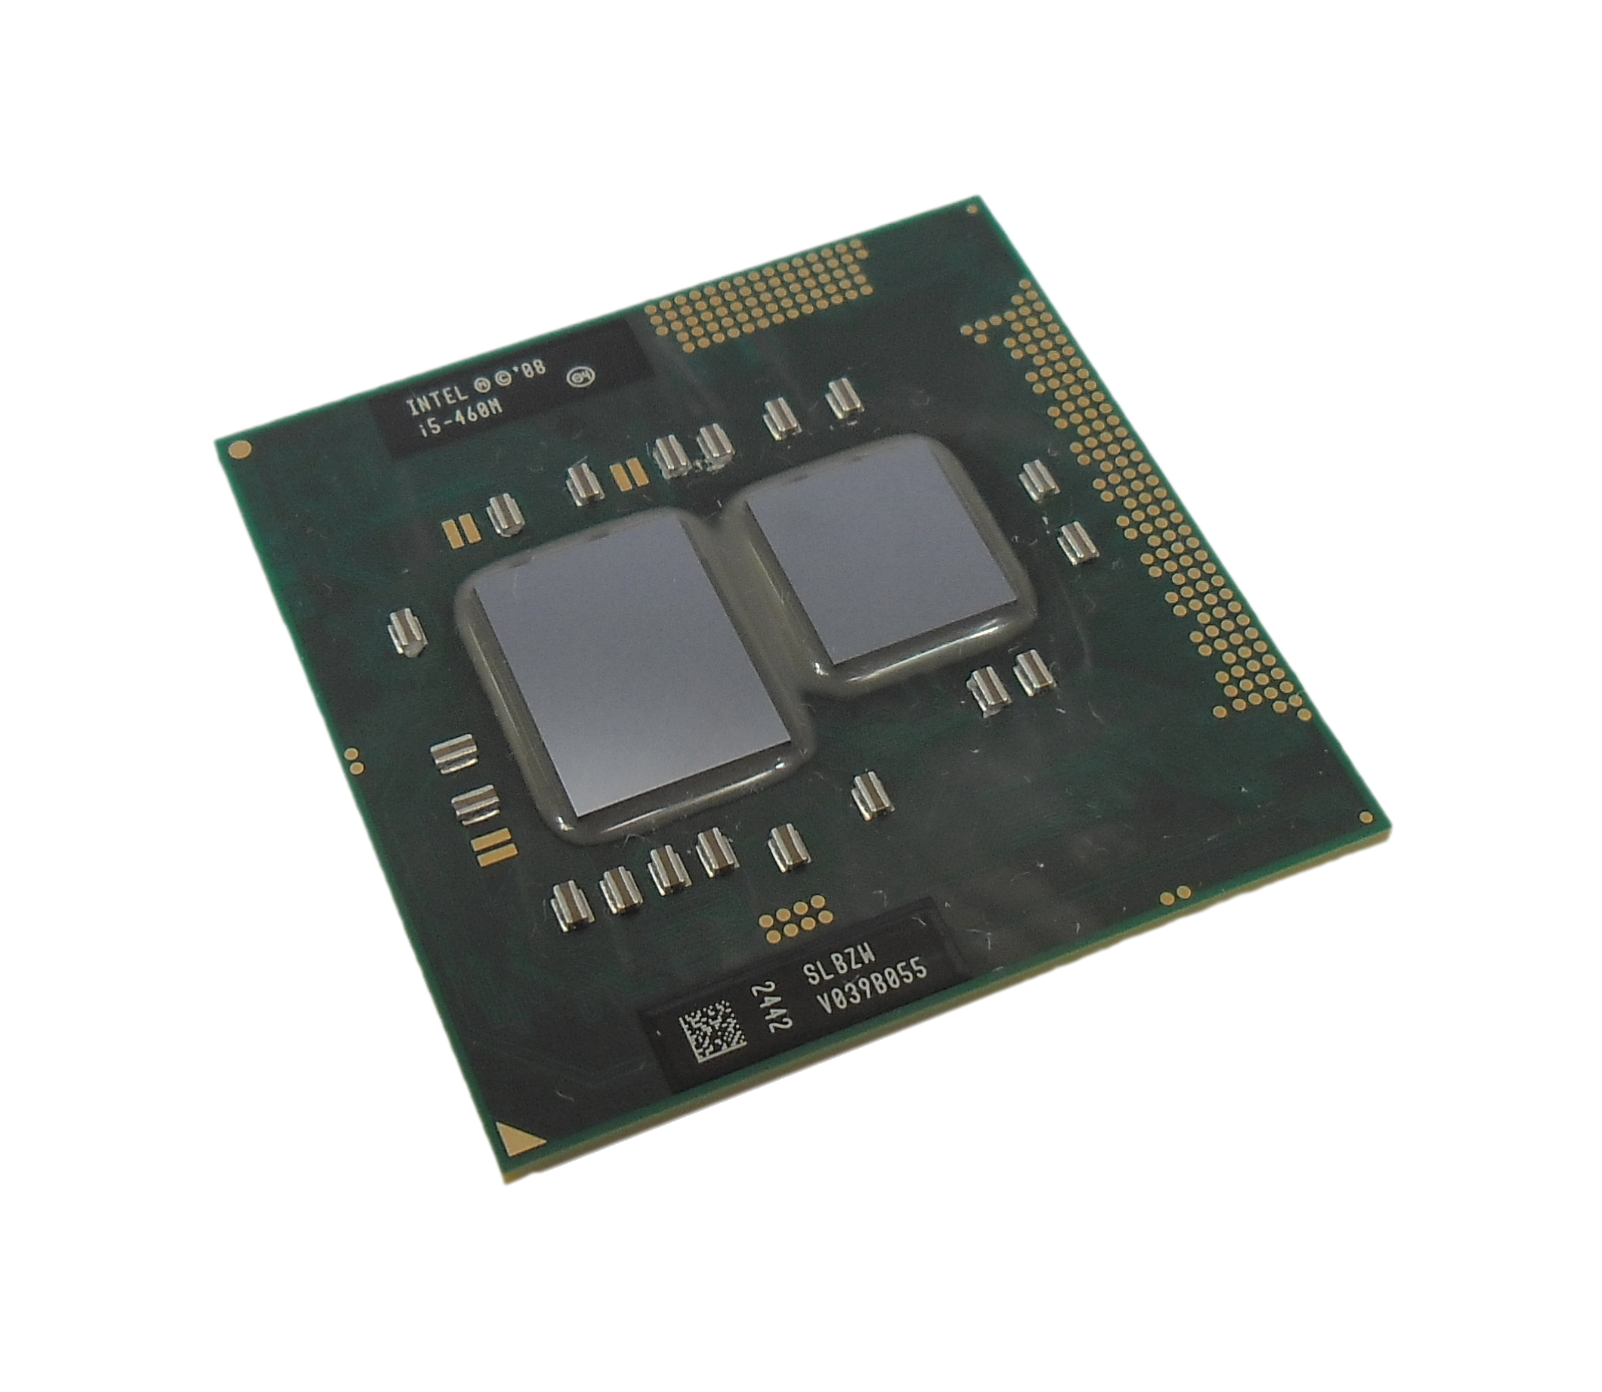 SLBZW Intel® Core? i5-460M Processor (3M Cache, 2.53 GHz)